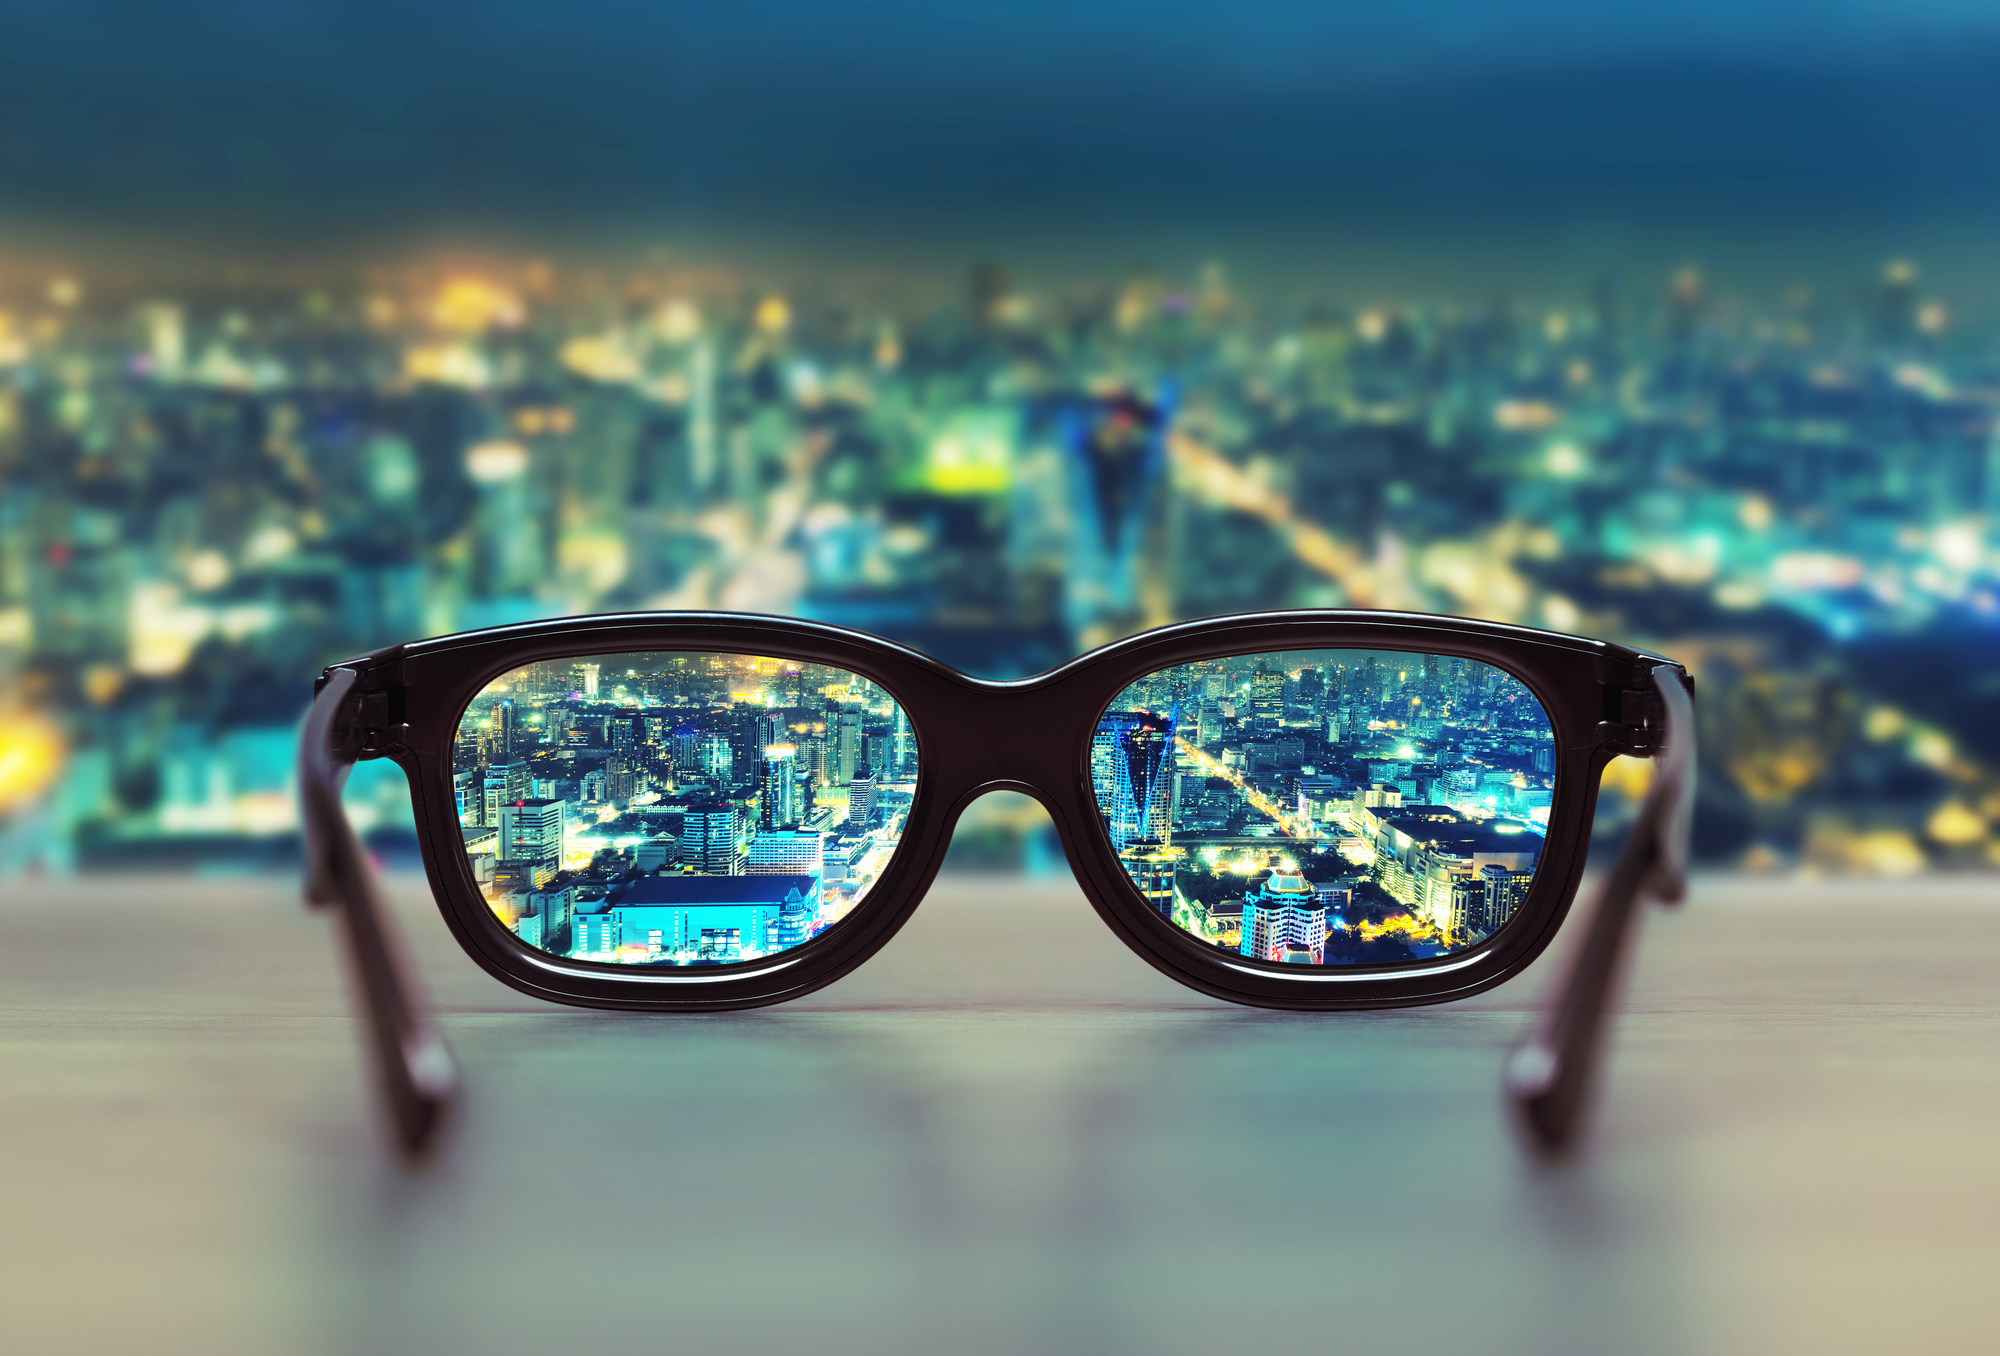 City at night through glasses